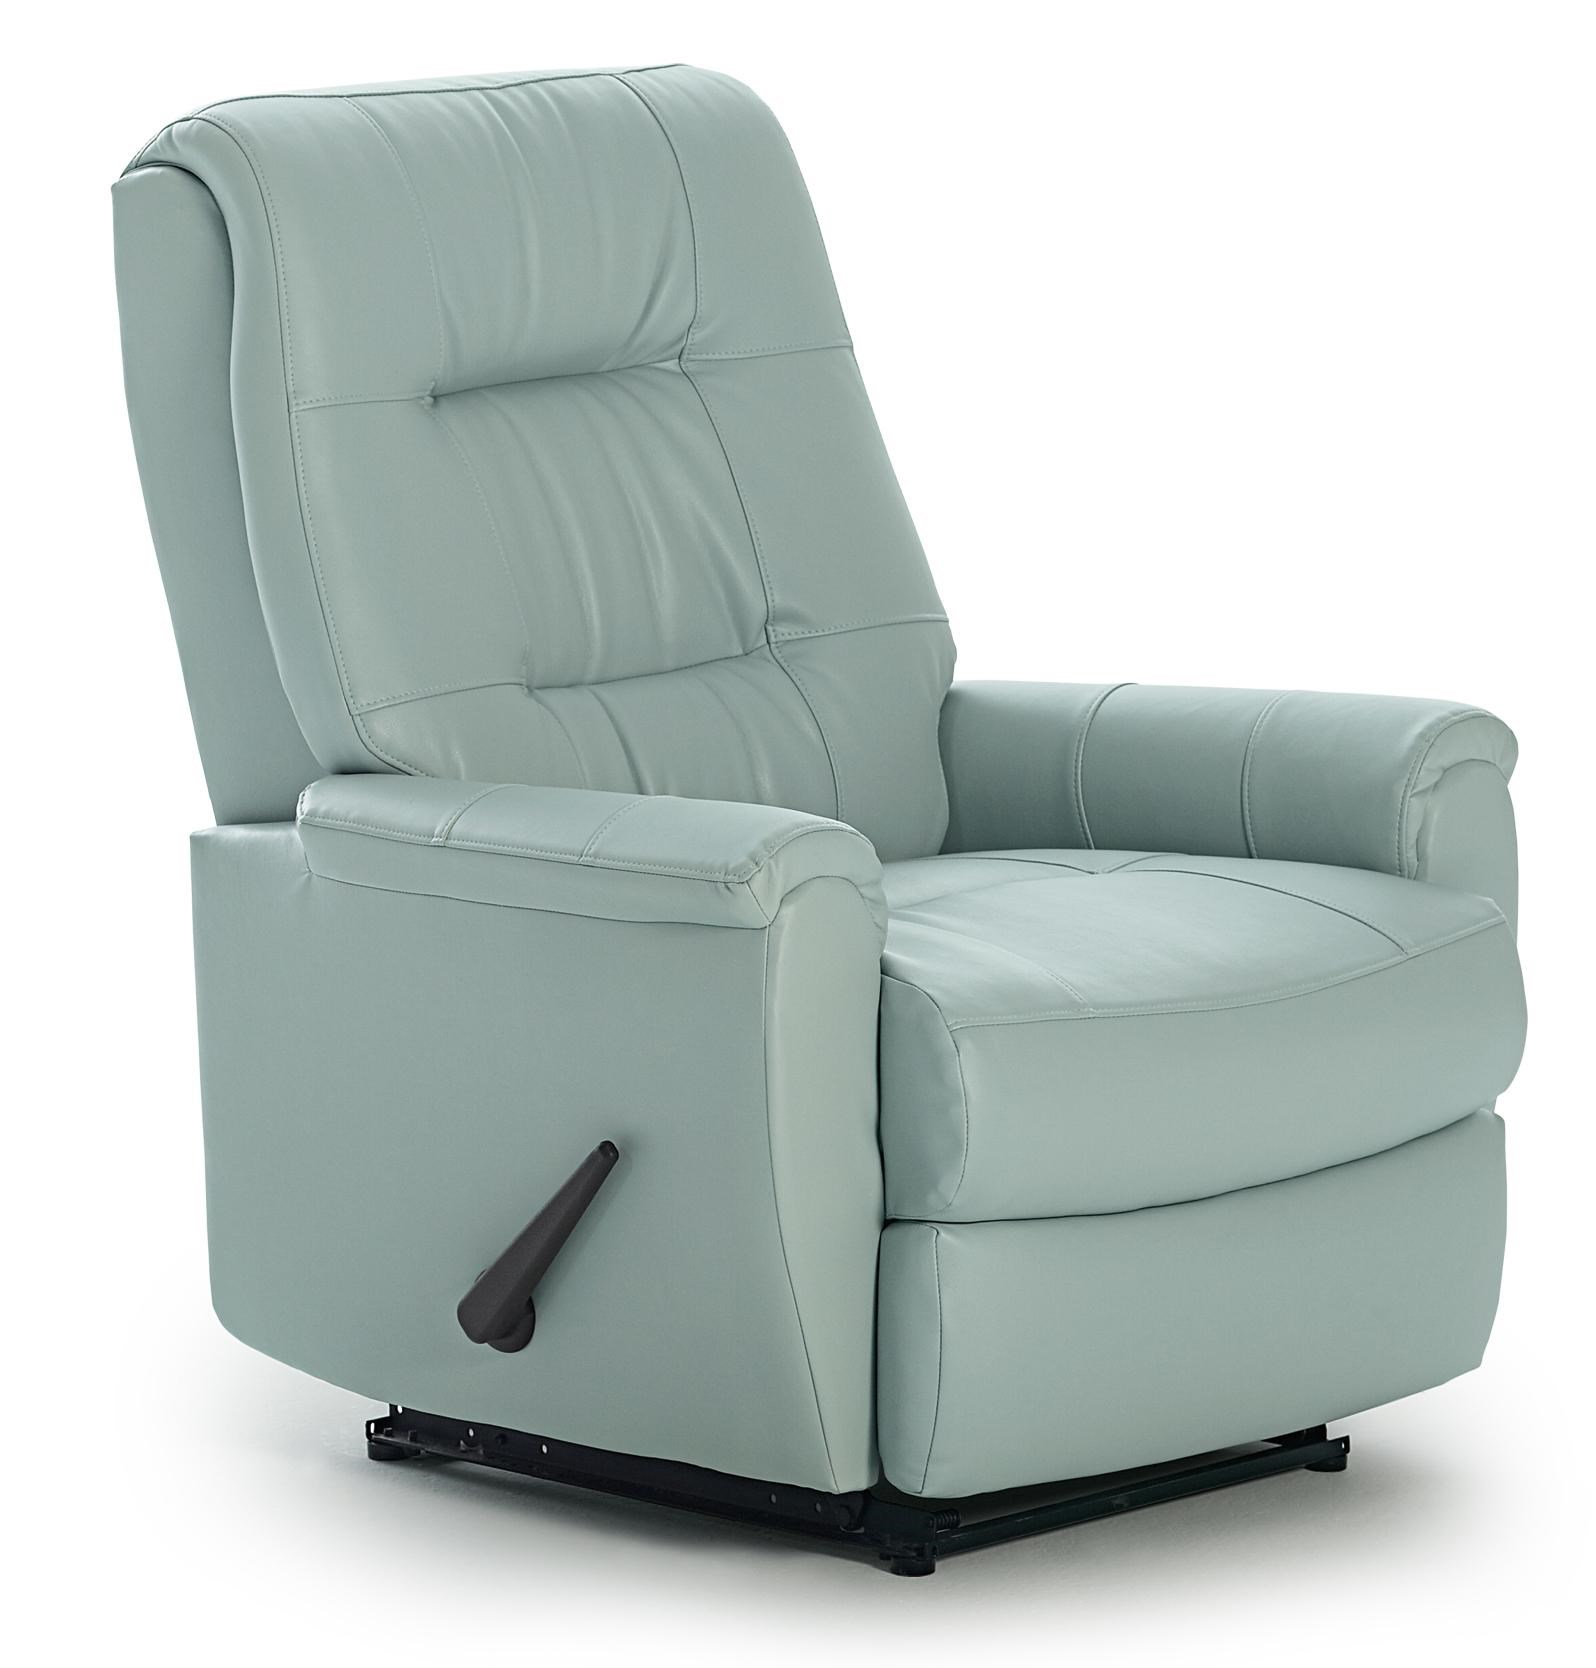 Charmant Best Home Furnishings Petite Recliners Felicia Swivel Rocker Recliner With  Button Tufted Back